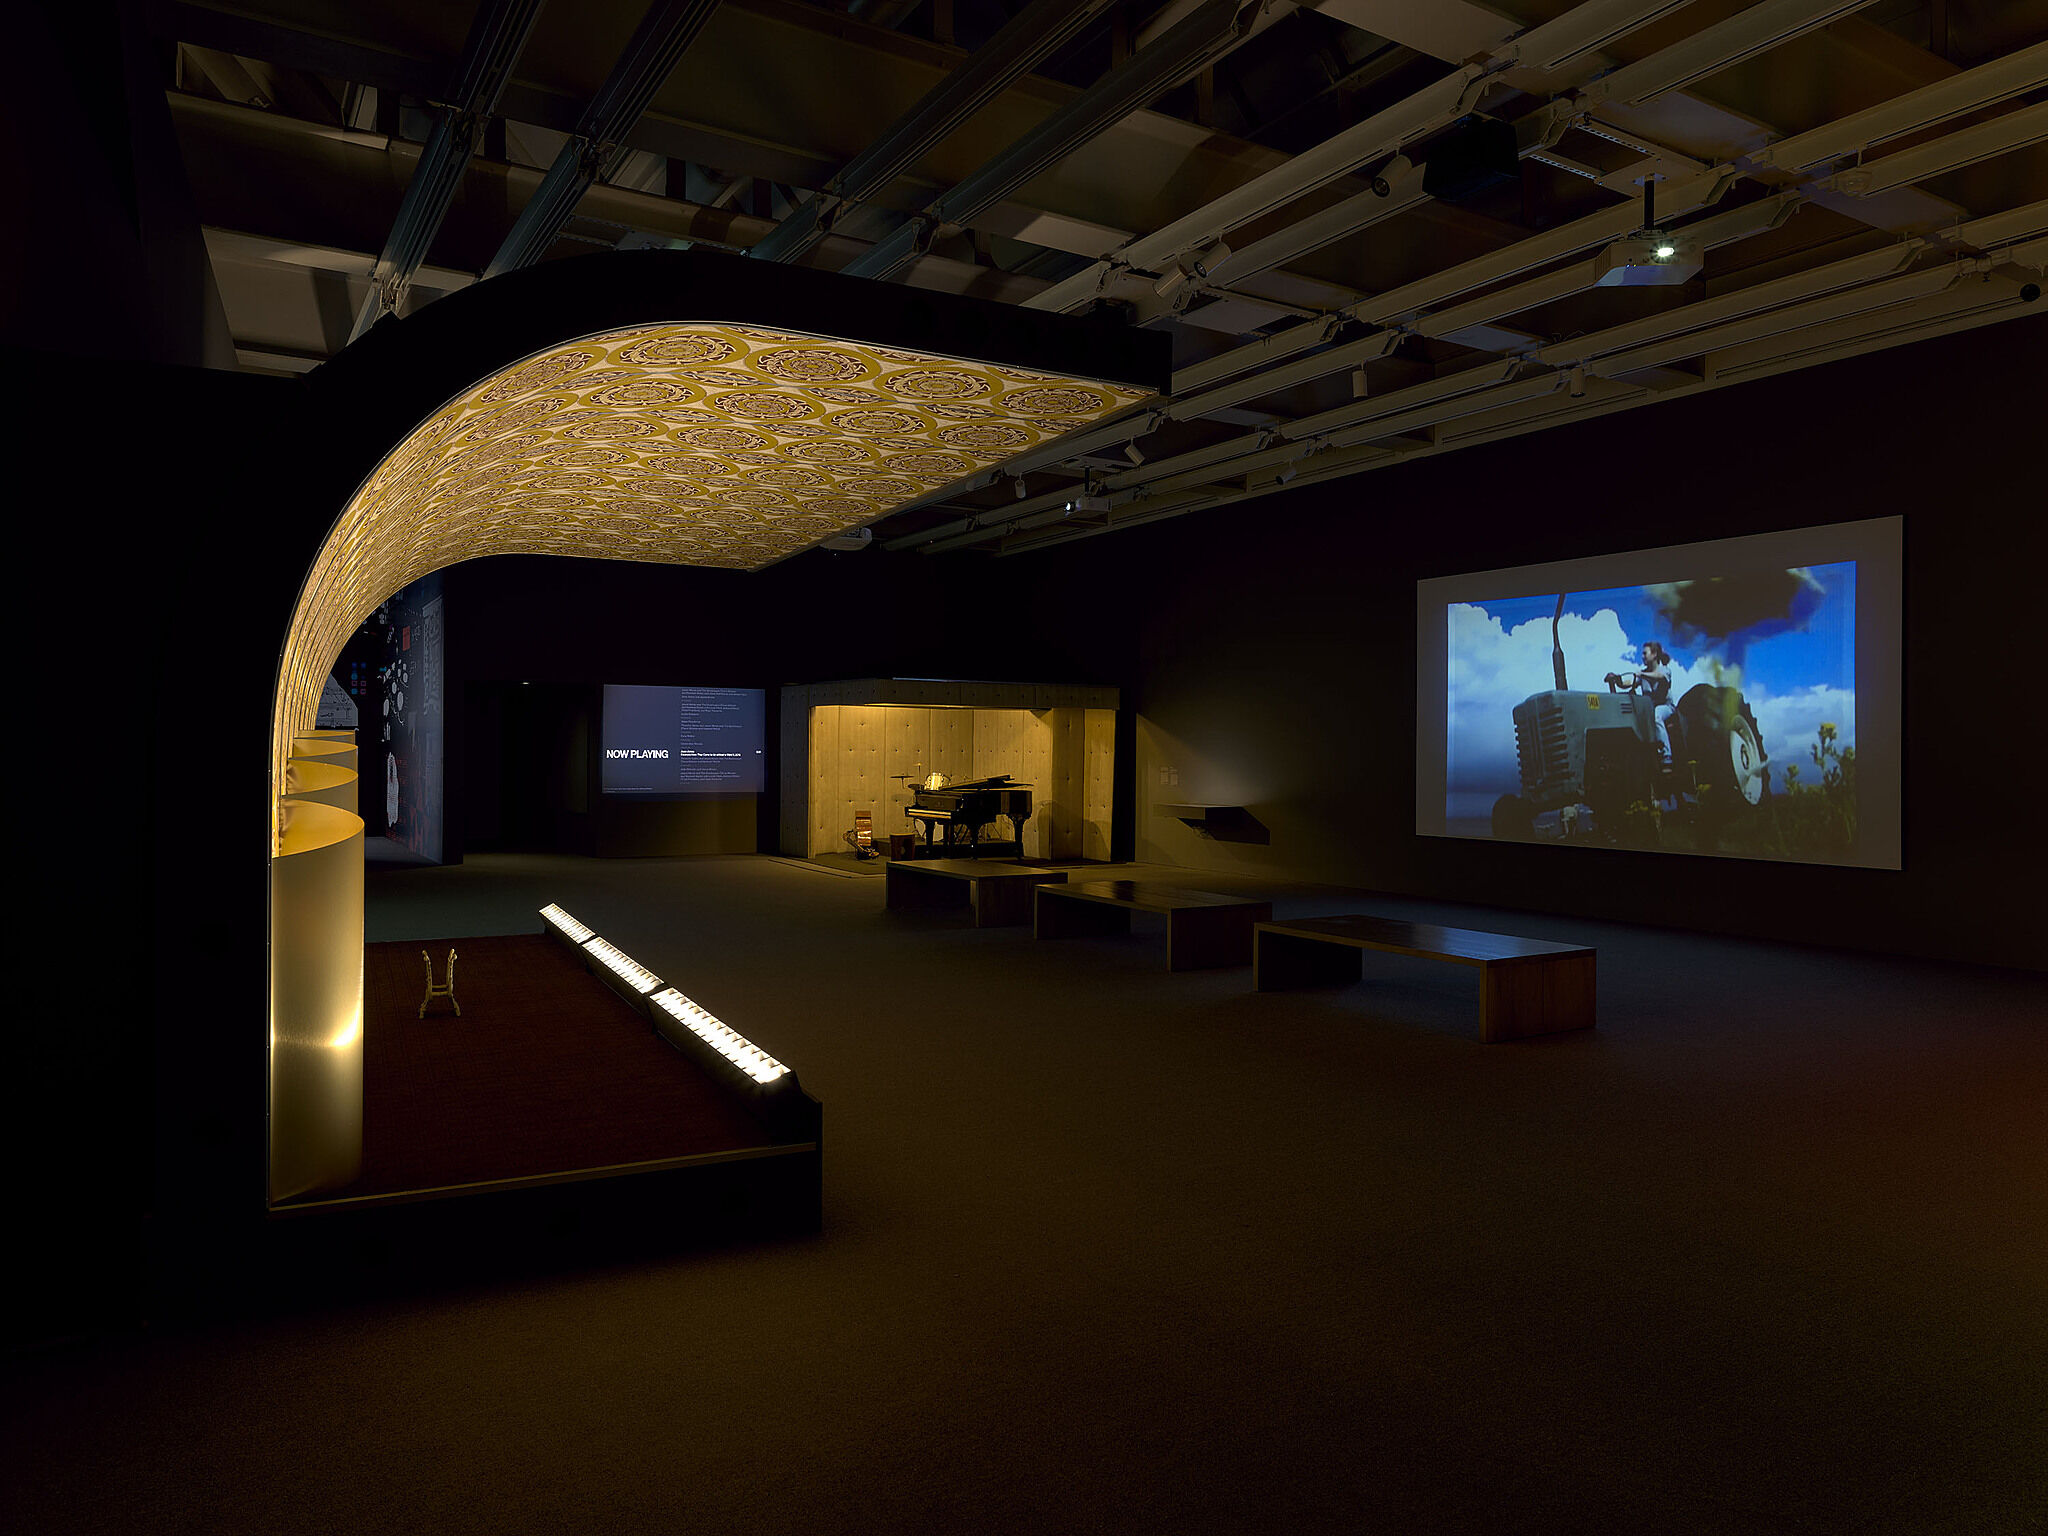 An image of the Whitney galleries with various video projections, stages, and musical instruments